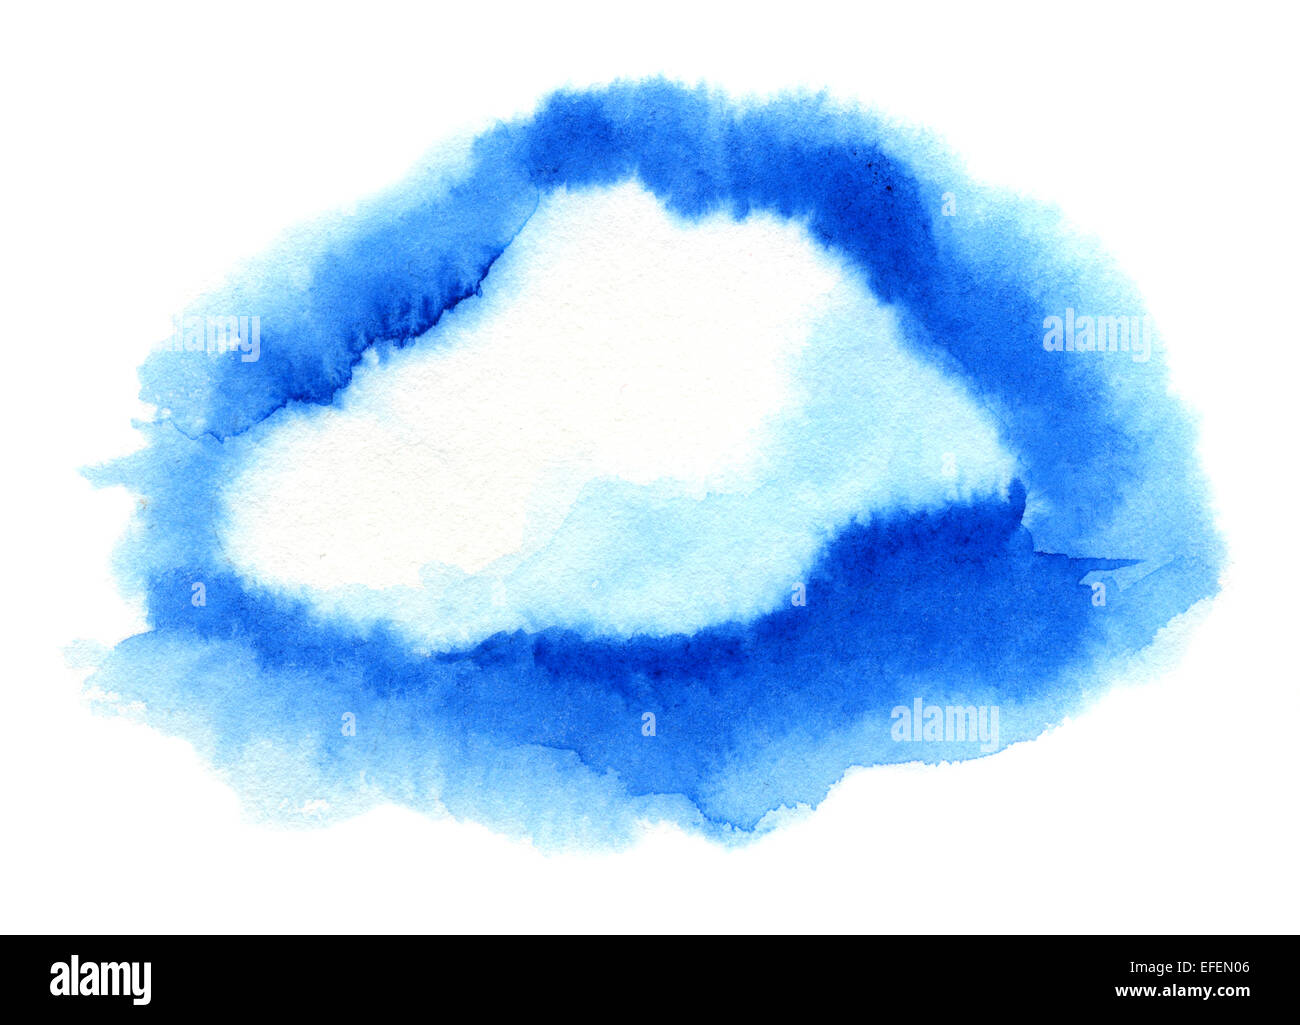 Cloud. Watercolor illustration - Stock Image